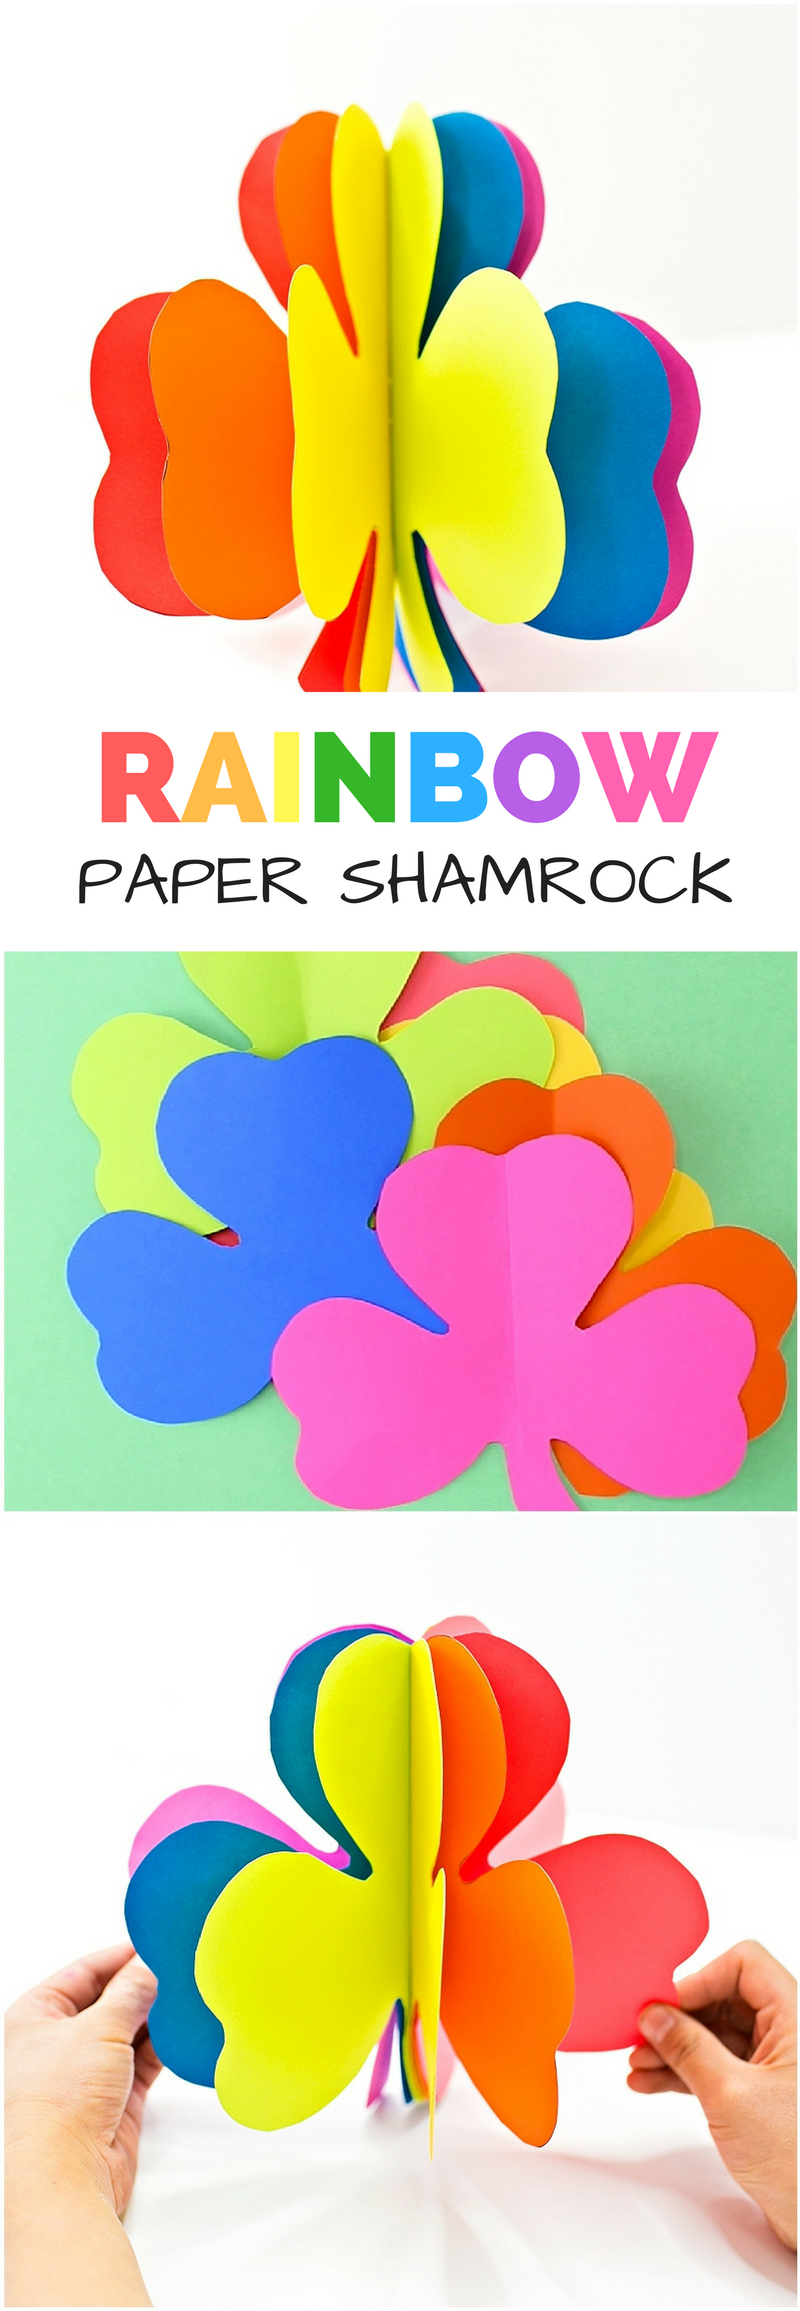 3d Rainbow Paper Shamrock Craft Pinterest Papercraft Rainbows